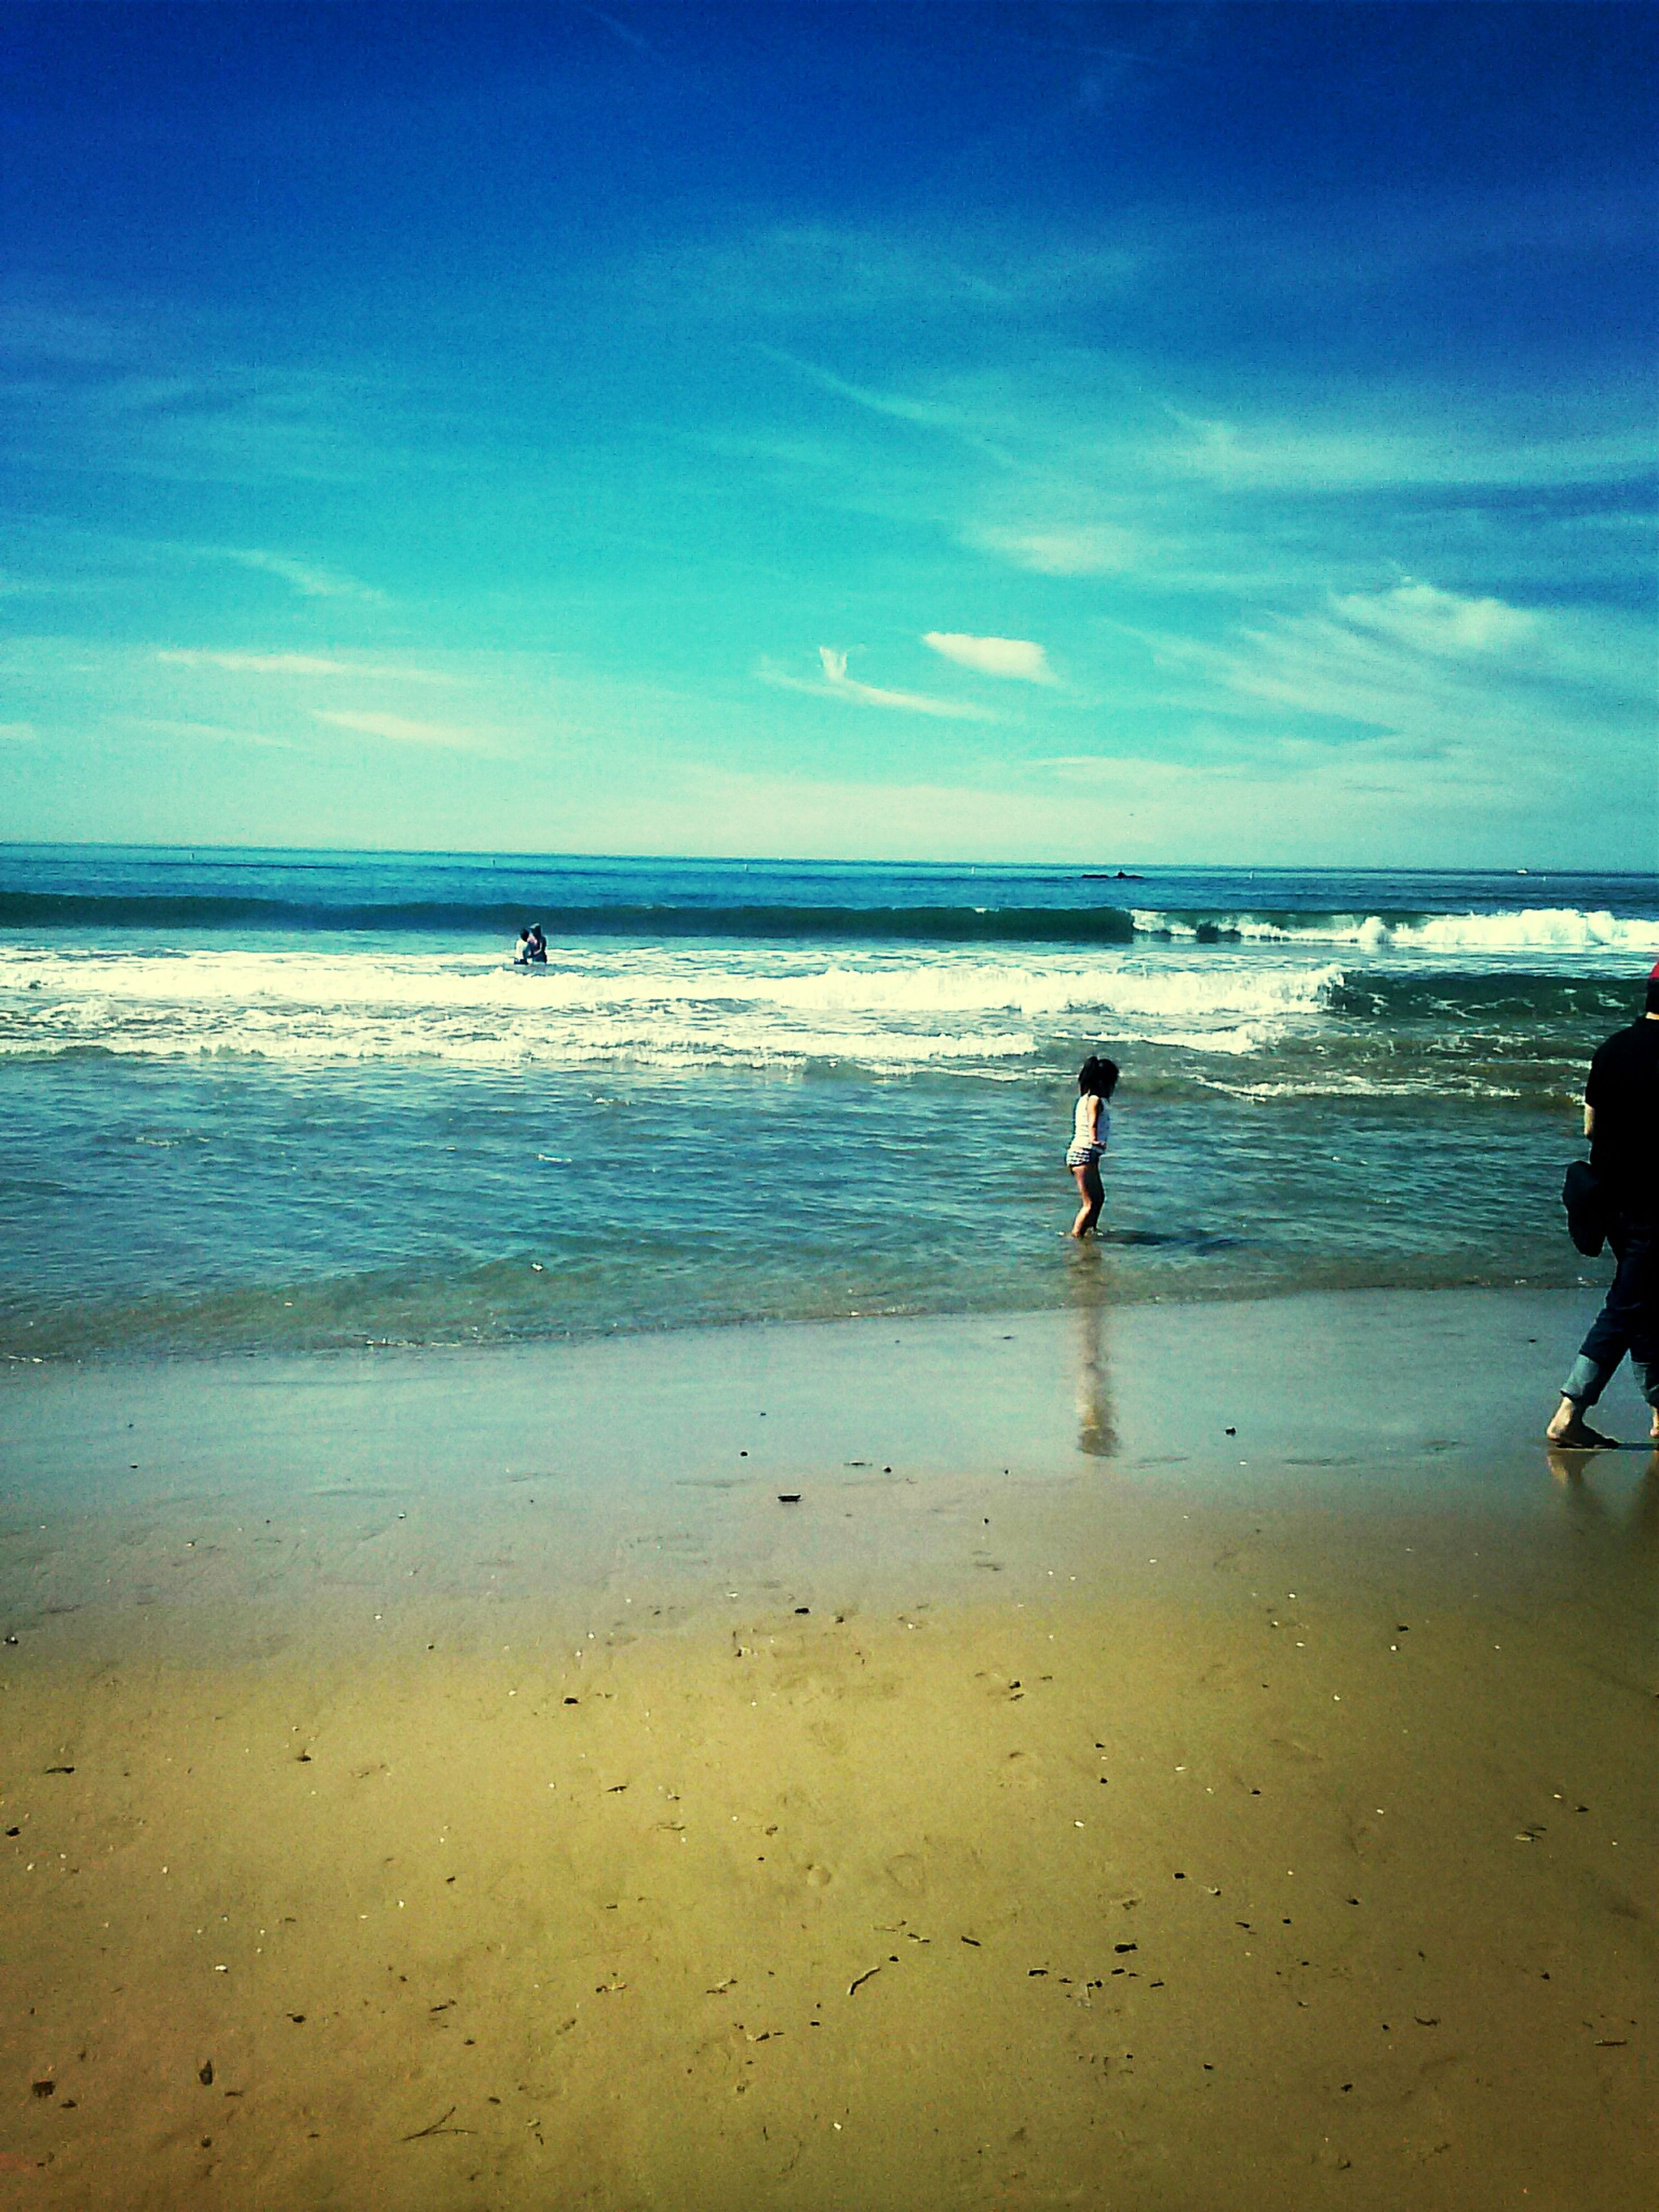 sea, beach, horizon over water, water, shore, vacations, tranquil scene, scenics, sand, tranquility, tourism, sky, wave, tourist, beauty in nature, summer, coastline, travel, tide, idyllic, leisure activity, calm, travel destinations, nature, weekend activities, non-urban scene, blue, seascape, ocean, cloud